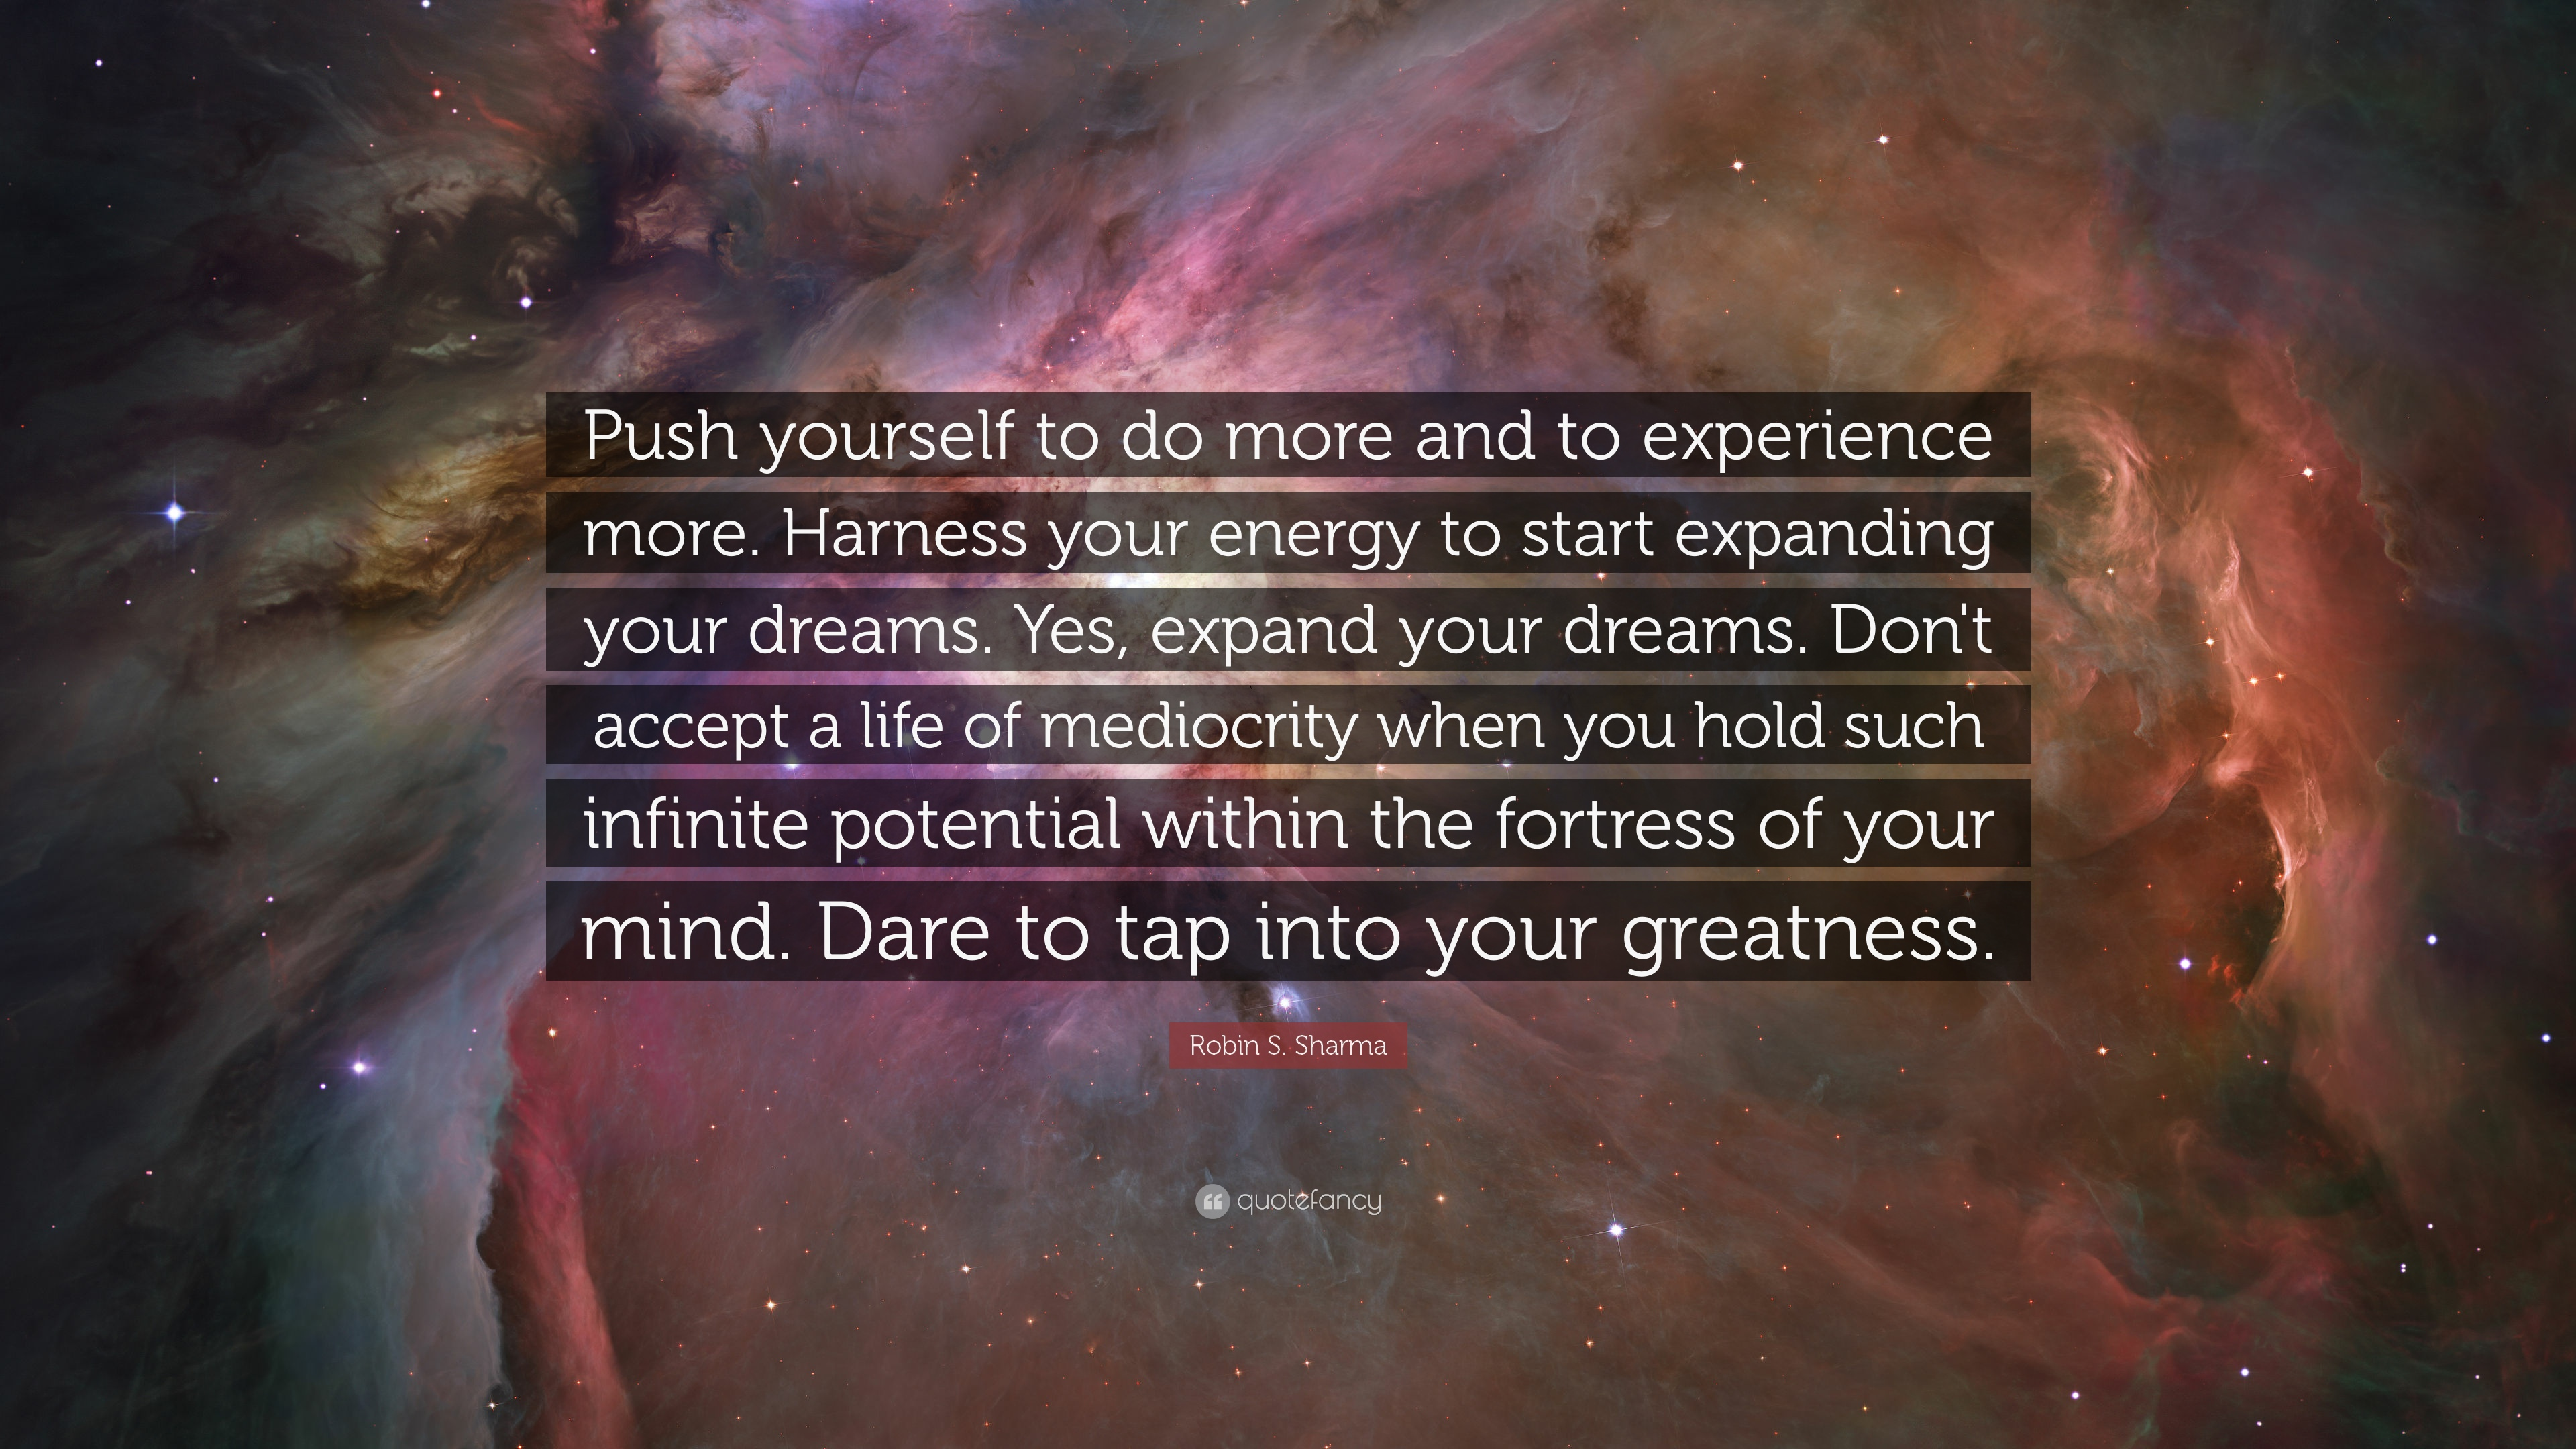 Robin S Sharma Quote Push Yourself To Do More And To Experience